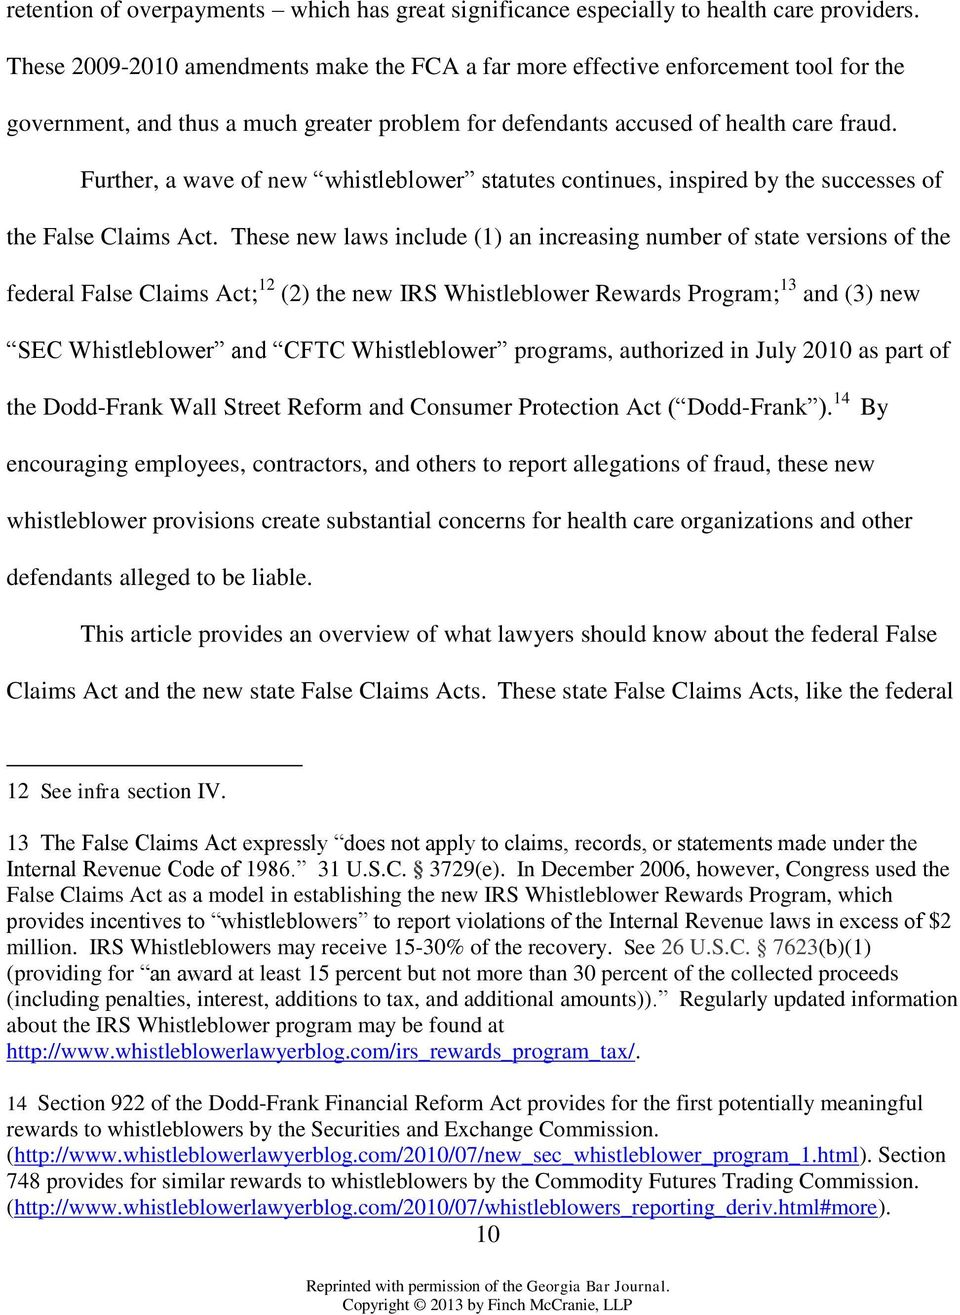 Further, a wave of new whistleblower statutes continues, inspired by the successes of the False Claims Act.